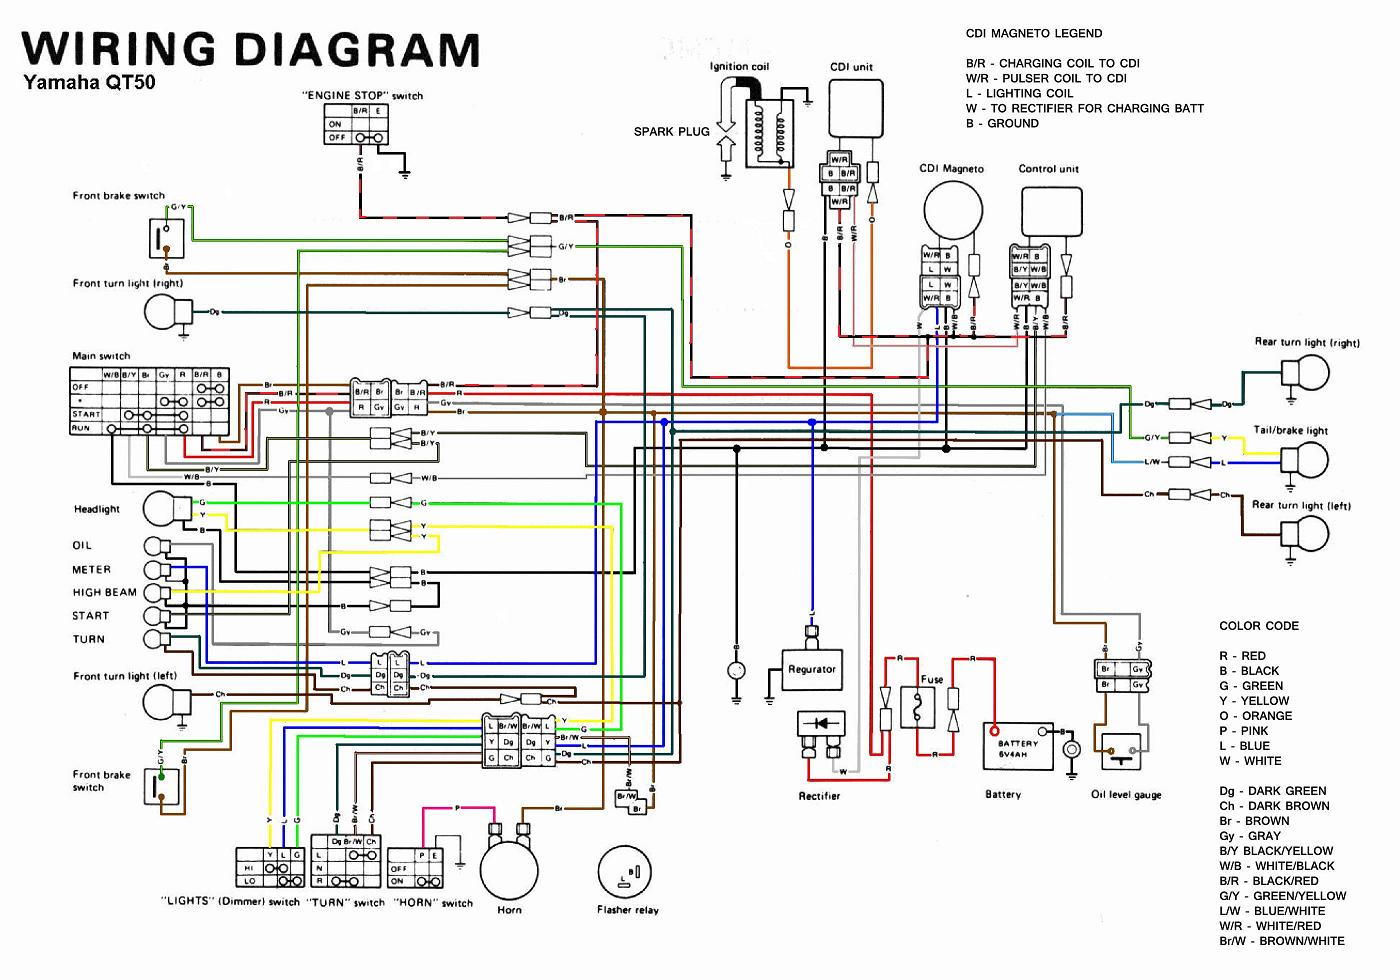 hight resolution of yamaha ct1 wiring diagram simple wiring schema 1973 yamaha 175 enduro yamaha ct1 175 wiring diagram